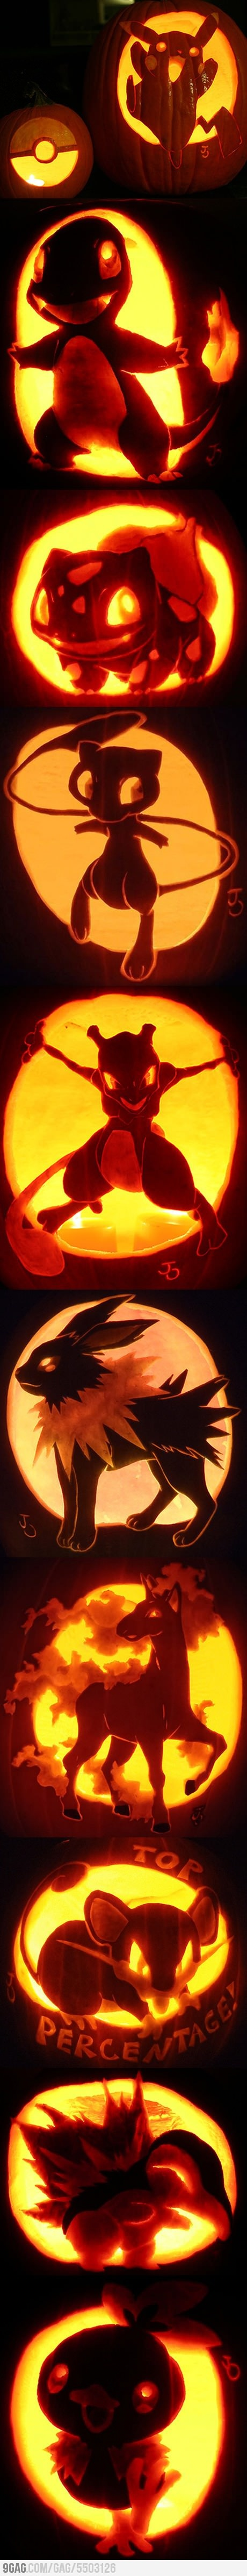 Best 20+ Amazing pumpkin carving ideas on Pinterest | Pictures of ...